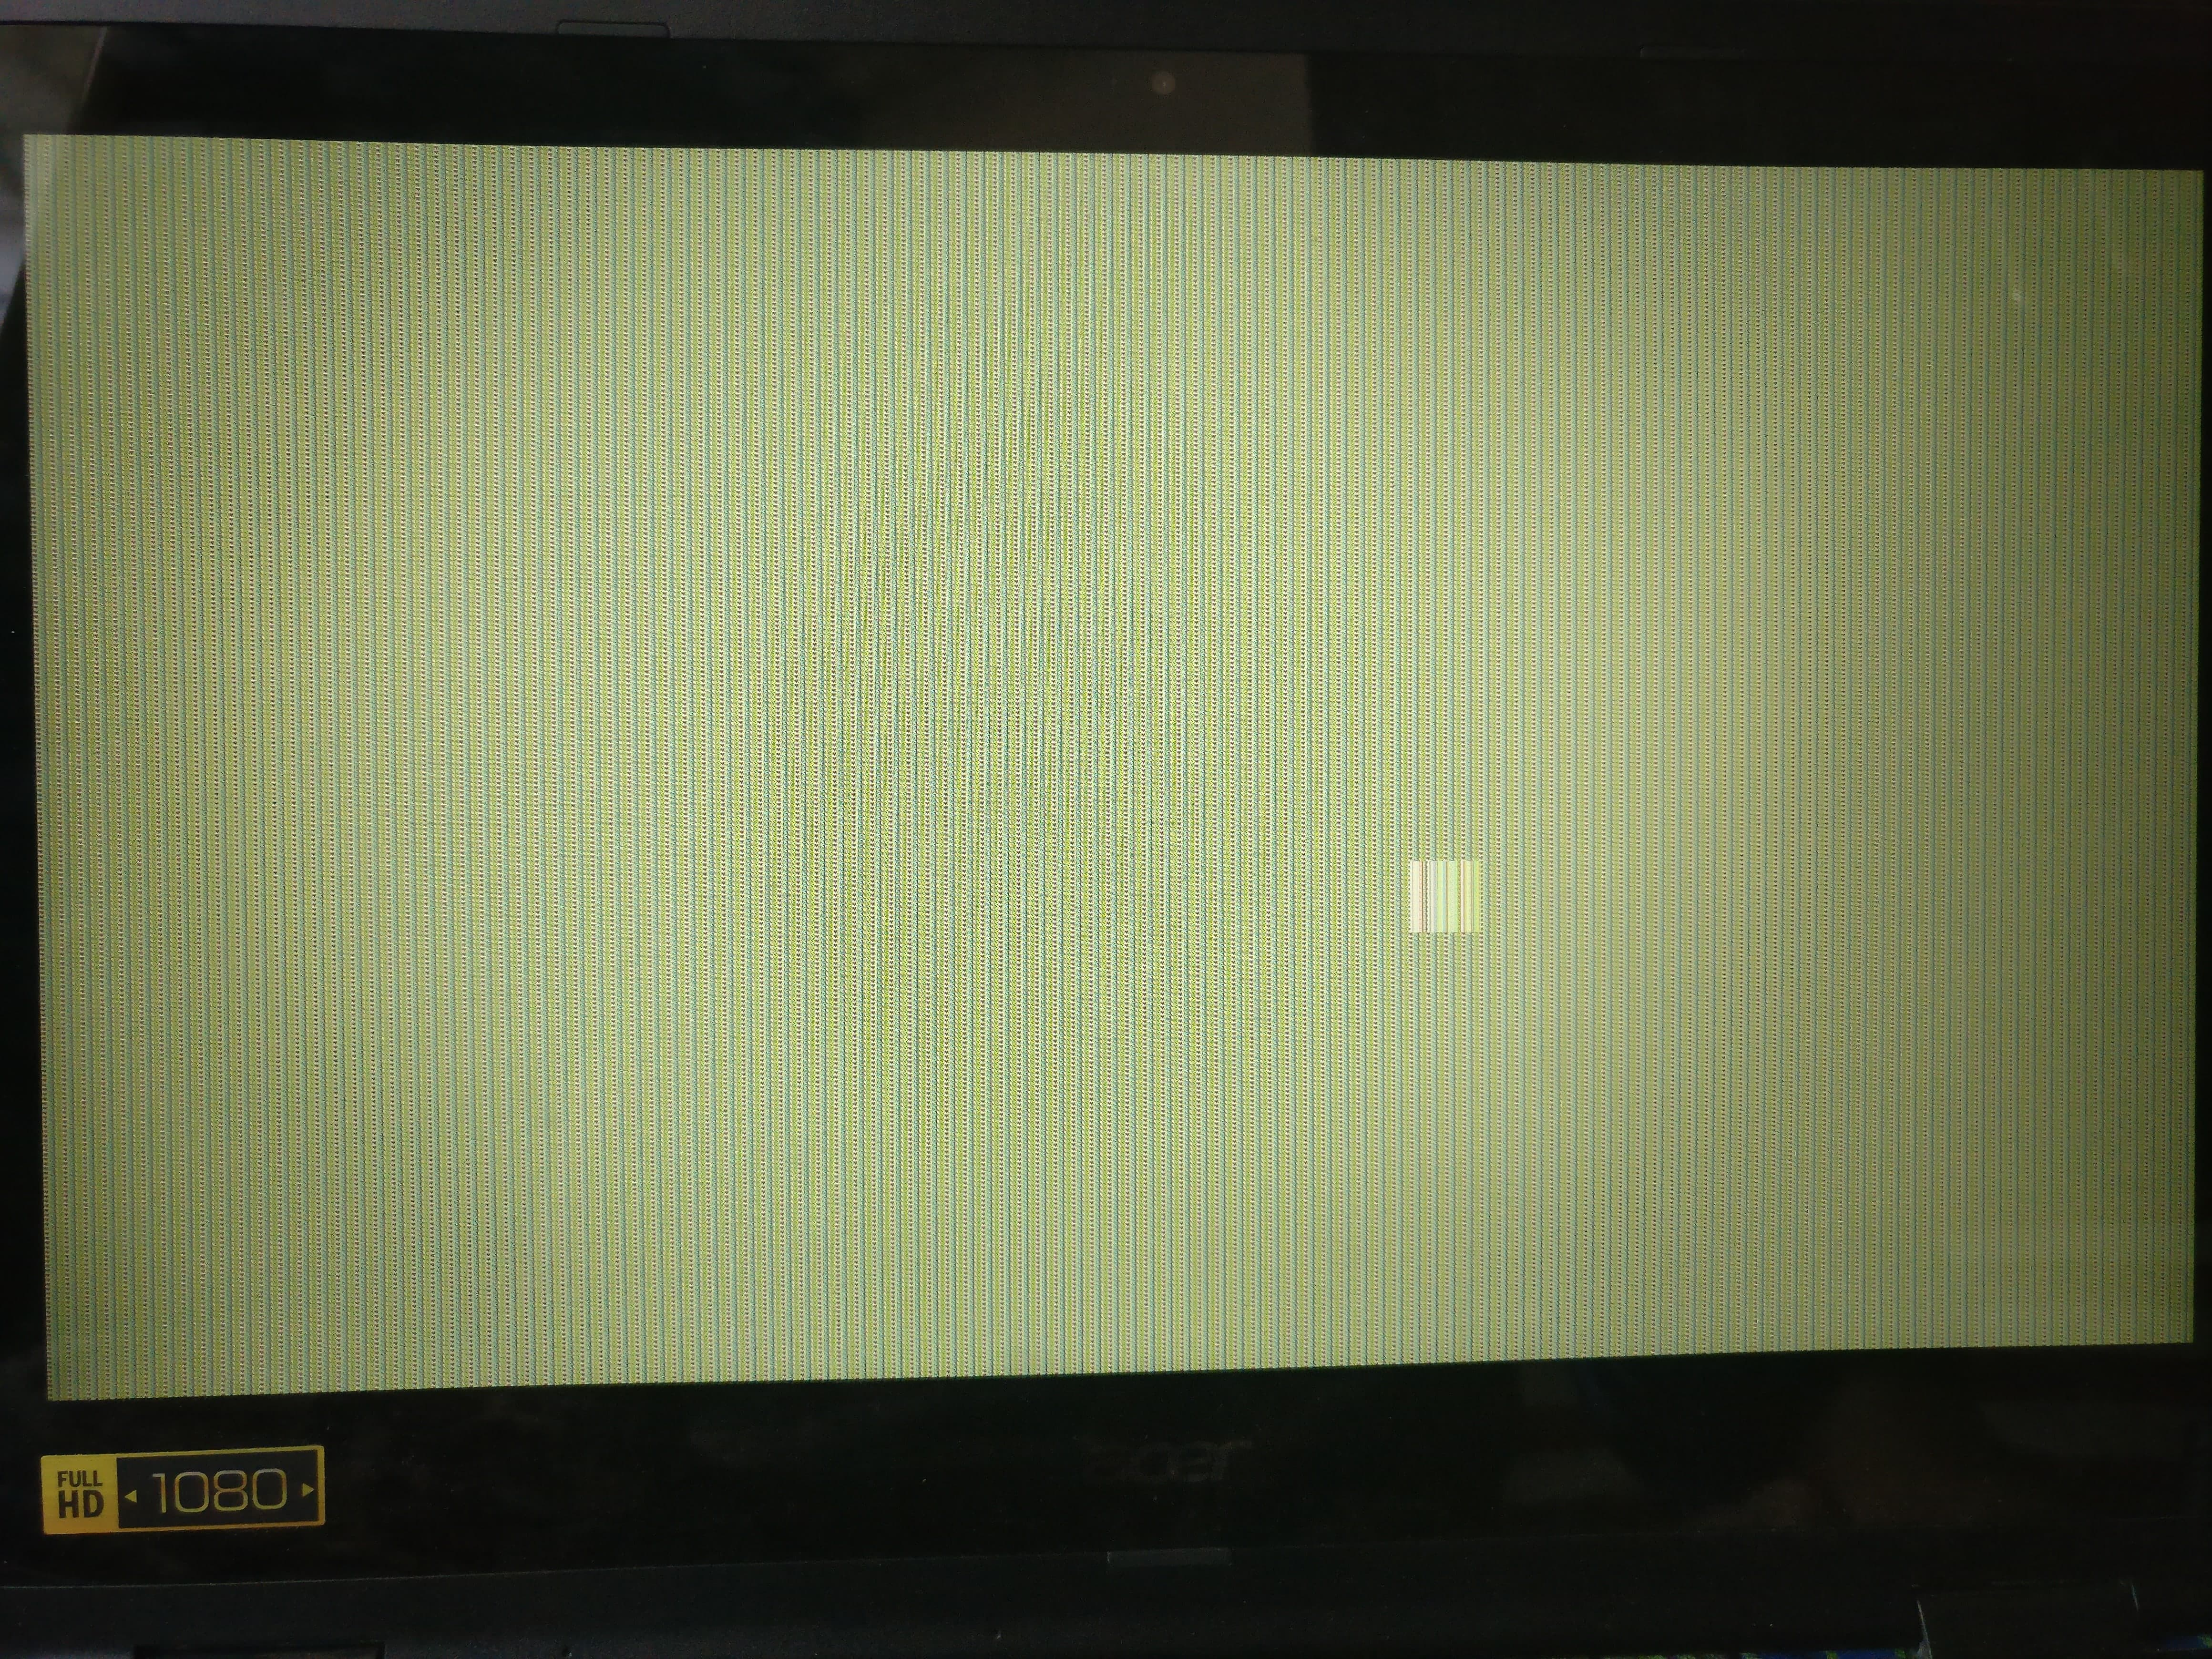 The screen is messed up when I wake my laptop from sleep